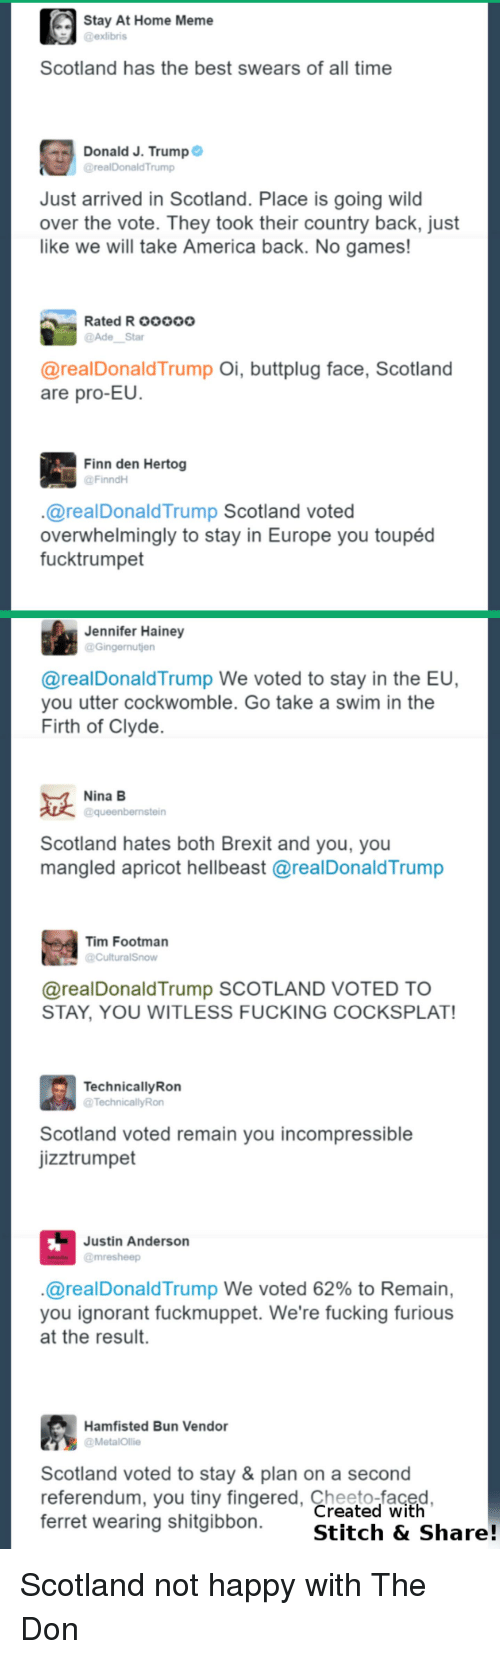 America, Donald Trump, and Finn: Stay At Home Meme  @exlibris  Scotland has the best swears of all time  Donald J. Trump  @realDonald'Trump  Just arrived in Scotland. Place is going wild  over the vote. They took their country back, just  like we will take America back. No games!  Rated Rooooo  Star  @real Donald Trump  Oi, buttplug face, Scotland  are pro-EU.  Finn den Hertog  FinndH  realDonald Trump Scotland voted  overwhelmingly to stay in Europe you toupéd  fucktrumpet  Jennifer Hainey  Gingernutien  @real Donald Trump We voted to stay in the EU,  you utter cockwomble. Go take a swim in the  Firth of Clyde  Nina B  aqueenbernstein  Scotland hates both Brexit and you, you  mangled apricot hellbeast arealDonaldTrump  Tim Footman  areal Donald Trump SCOTLAND VOTED TO  STAY, YOU WITLESS FUCKING COCKSPLAT!  Technically Ron  @TechnicallyRon  Scotland voted remain you incompressible  jizztrumpet  Justin Anderson  @mre sheep  areal Donald Trump We voted 62% to Remain,  you ignorant fuckmuppet. We're fucking furious  at the result.  Hamfisted Bun Vendor  a MetalOllie  Scotland voted to stay & plan on a second  referendum, you tiny fingered, Created with  ferret wearing shitgibbon  Stitch & Share! Scotland not happy with The Don